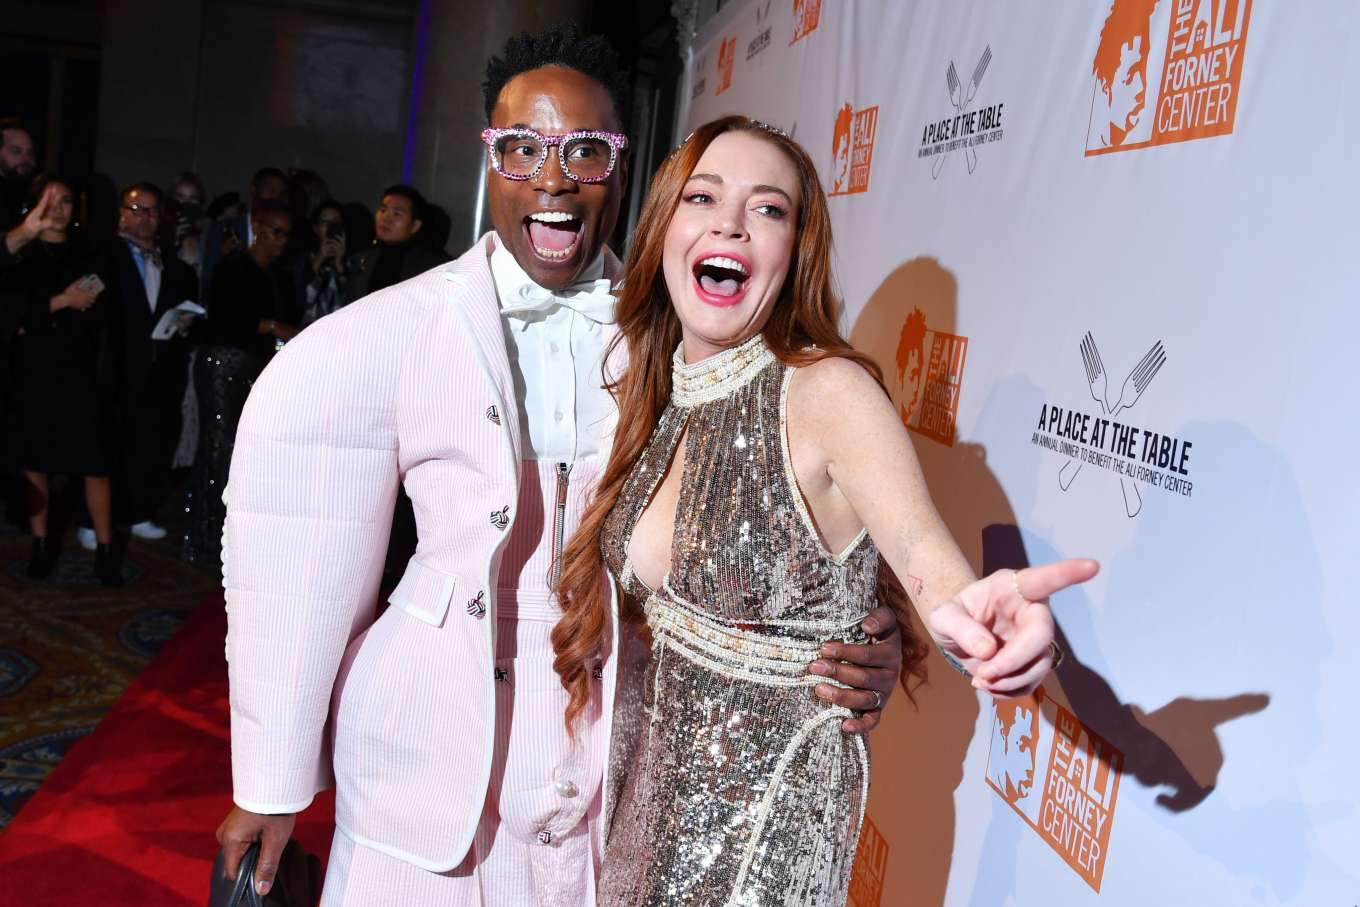 Lindsay Lohan 2019 : Lindsay Lohan – A Place at the Table: The Ali Forney Centers Annual Fall Gala-02